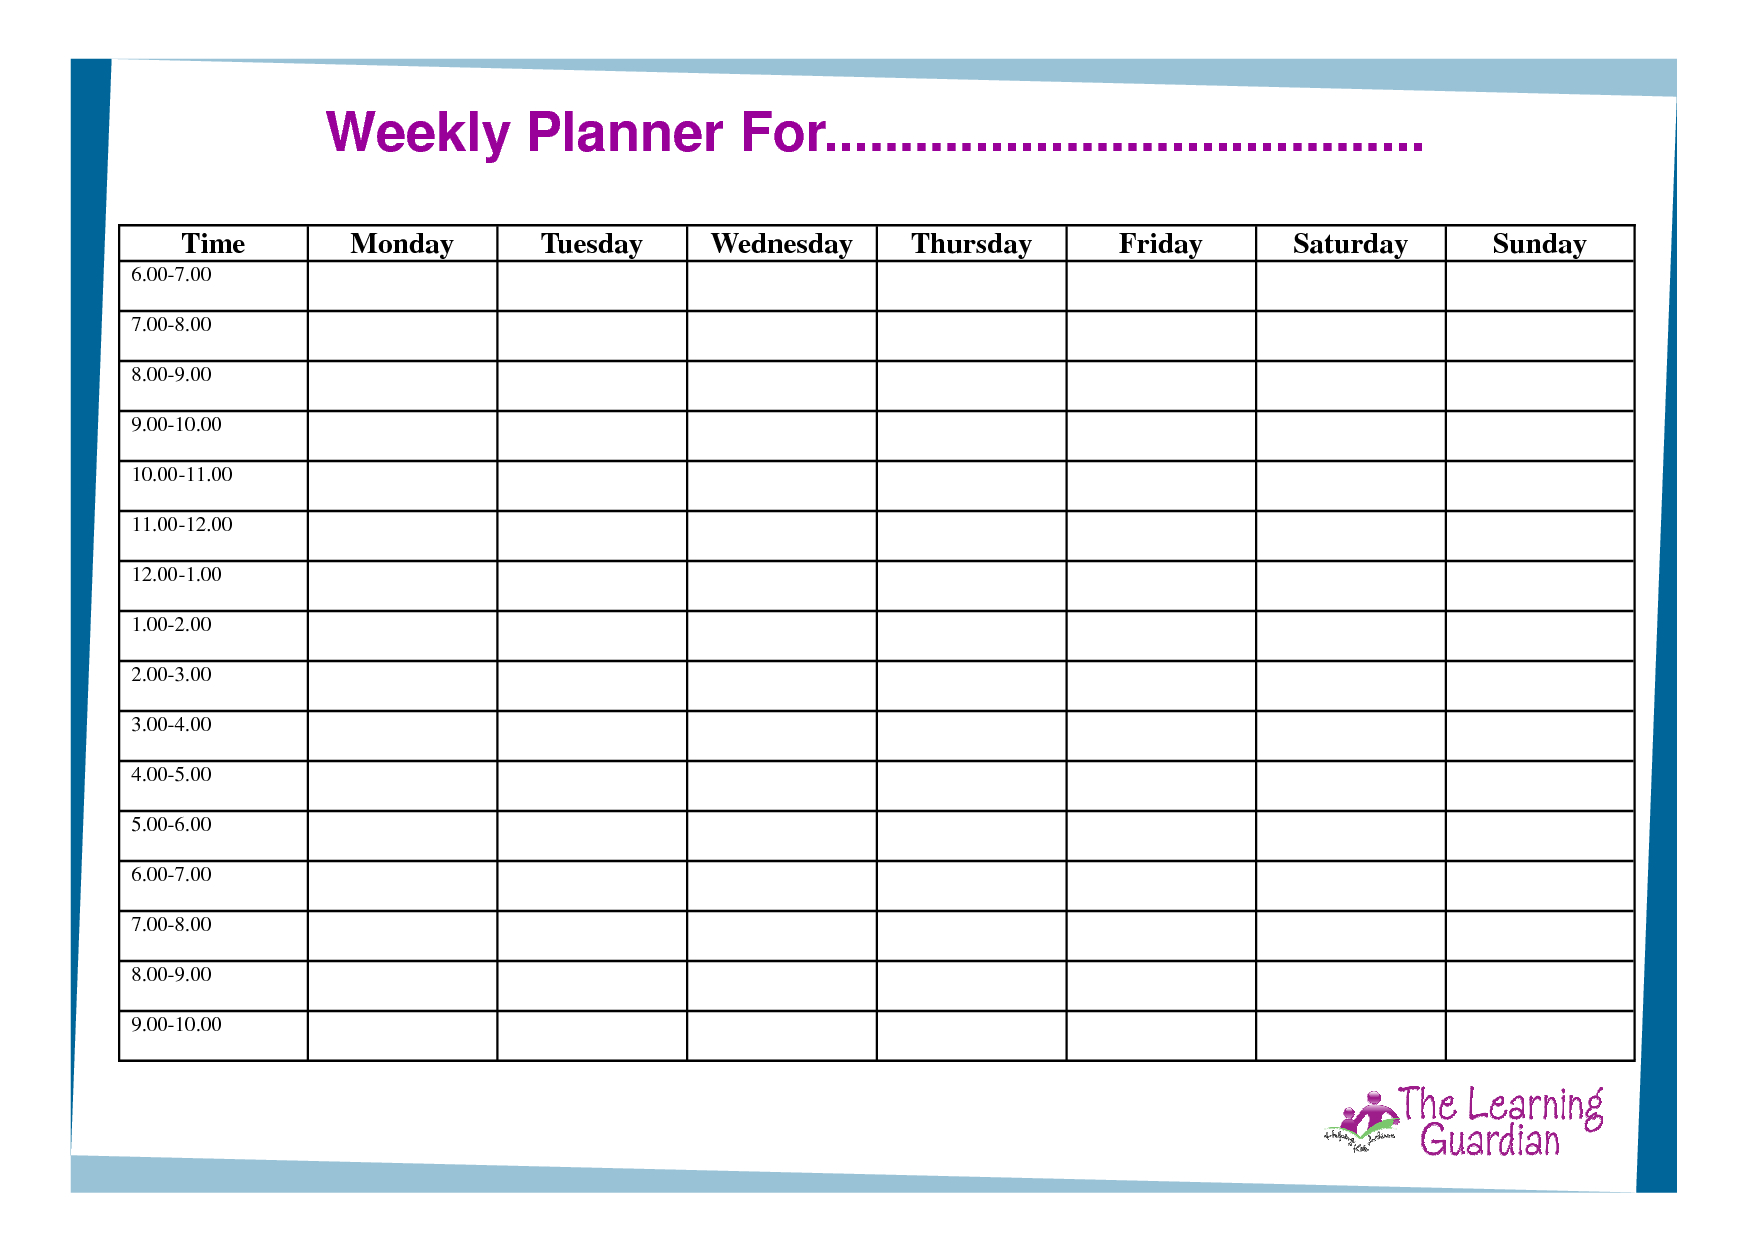 Free Printable Weekly Calendar Templates | Weekly Planner For Time throughout Free Template For Weekly Schedule